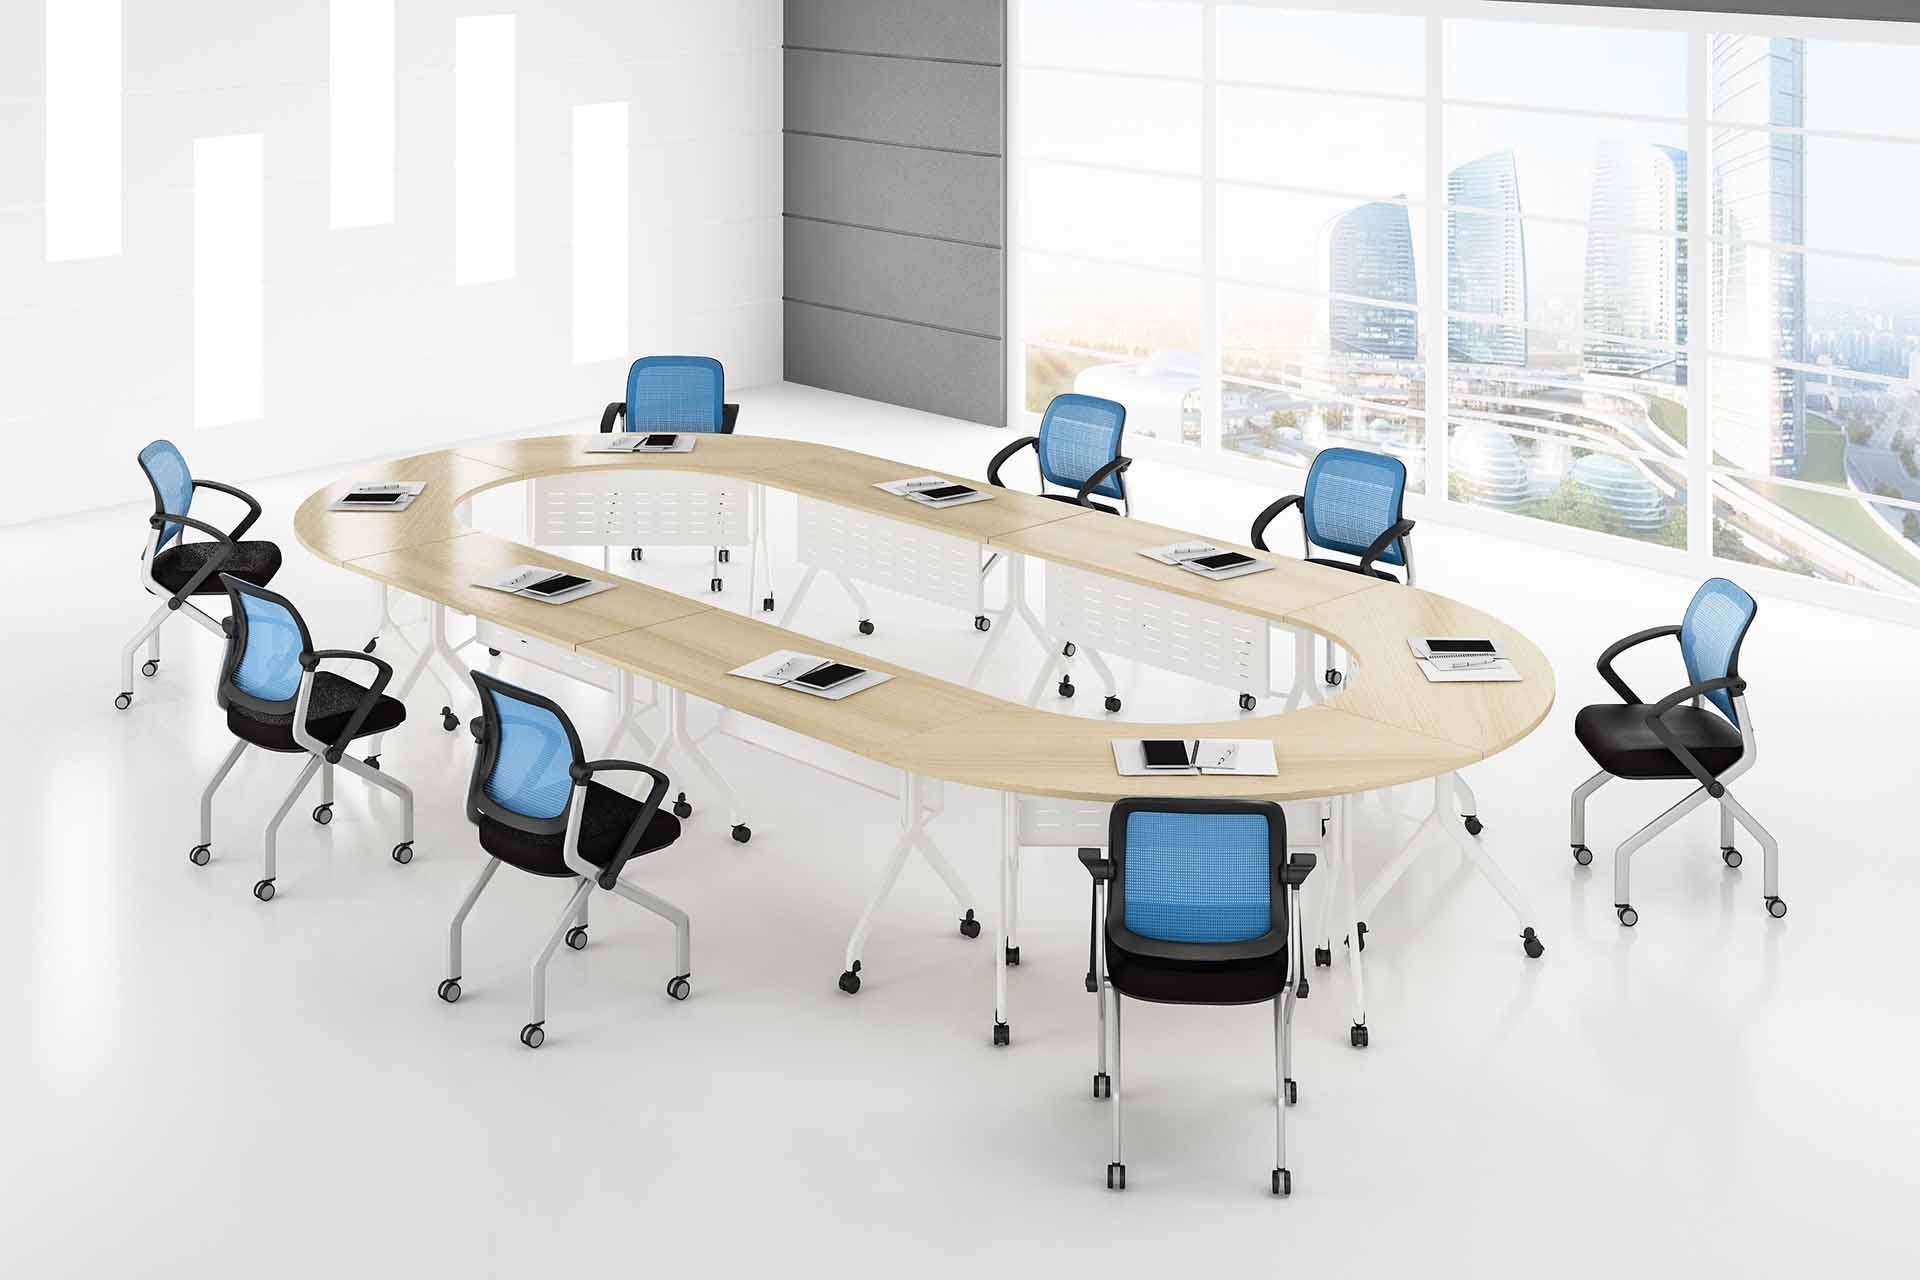 professional flip top conference tables modern for conference for training room-8